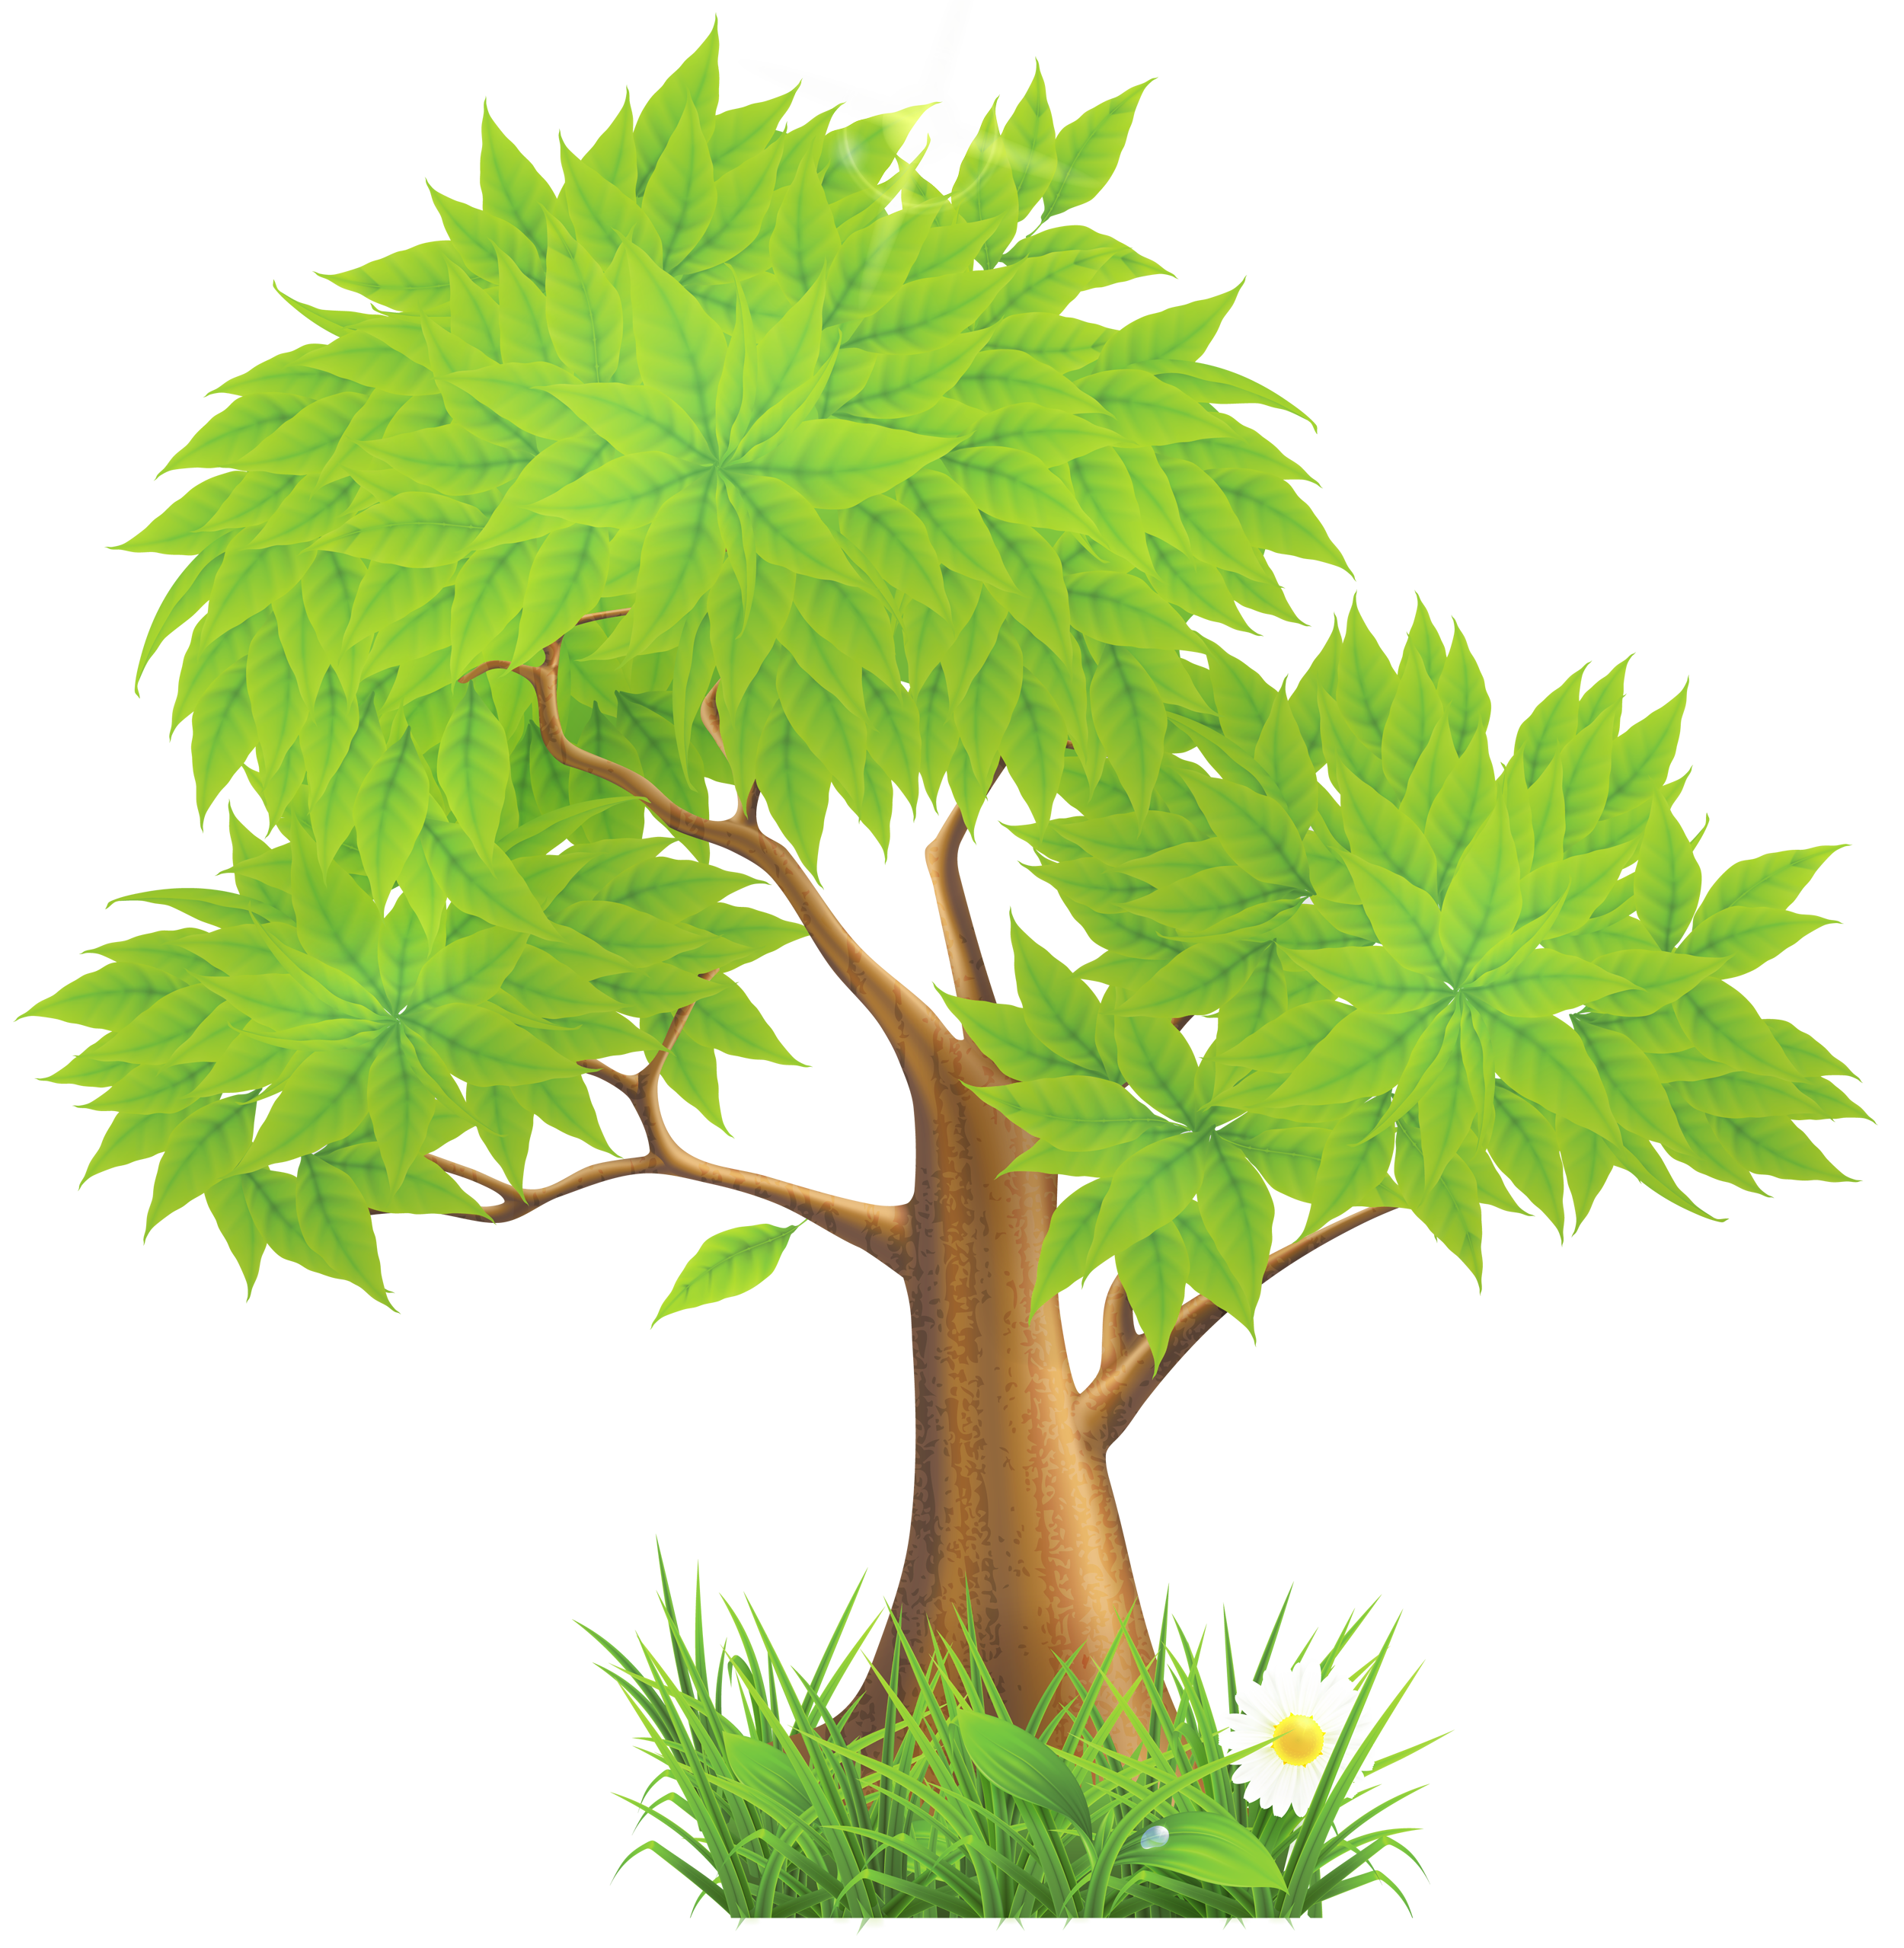 Cute pine tree clipart image library stock pine%20tree%20clipart%20png   Clipart   Pinterest   Pine, Tree ... image library stock